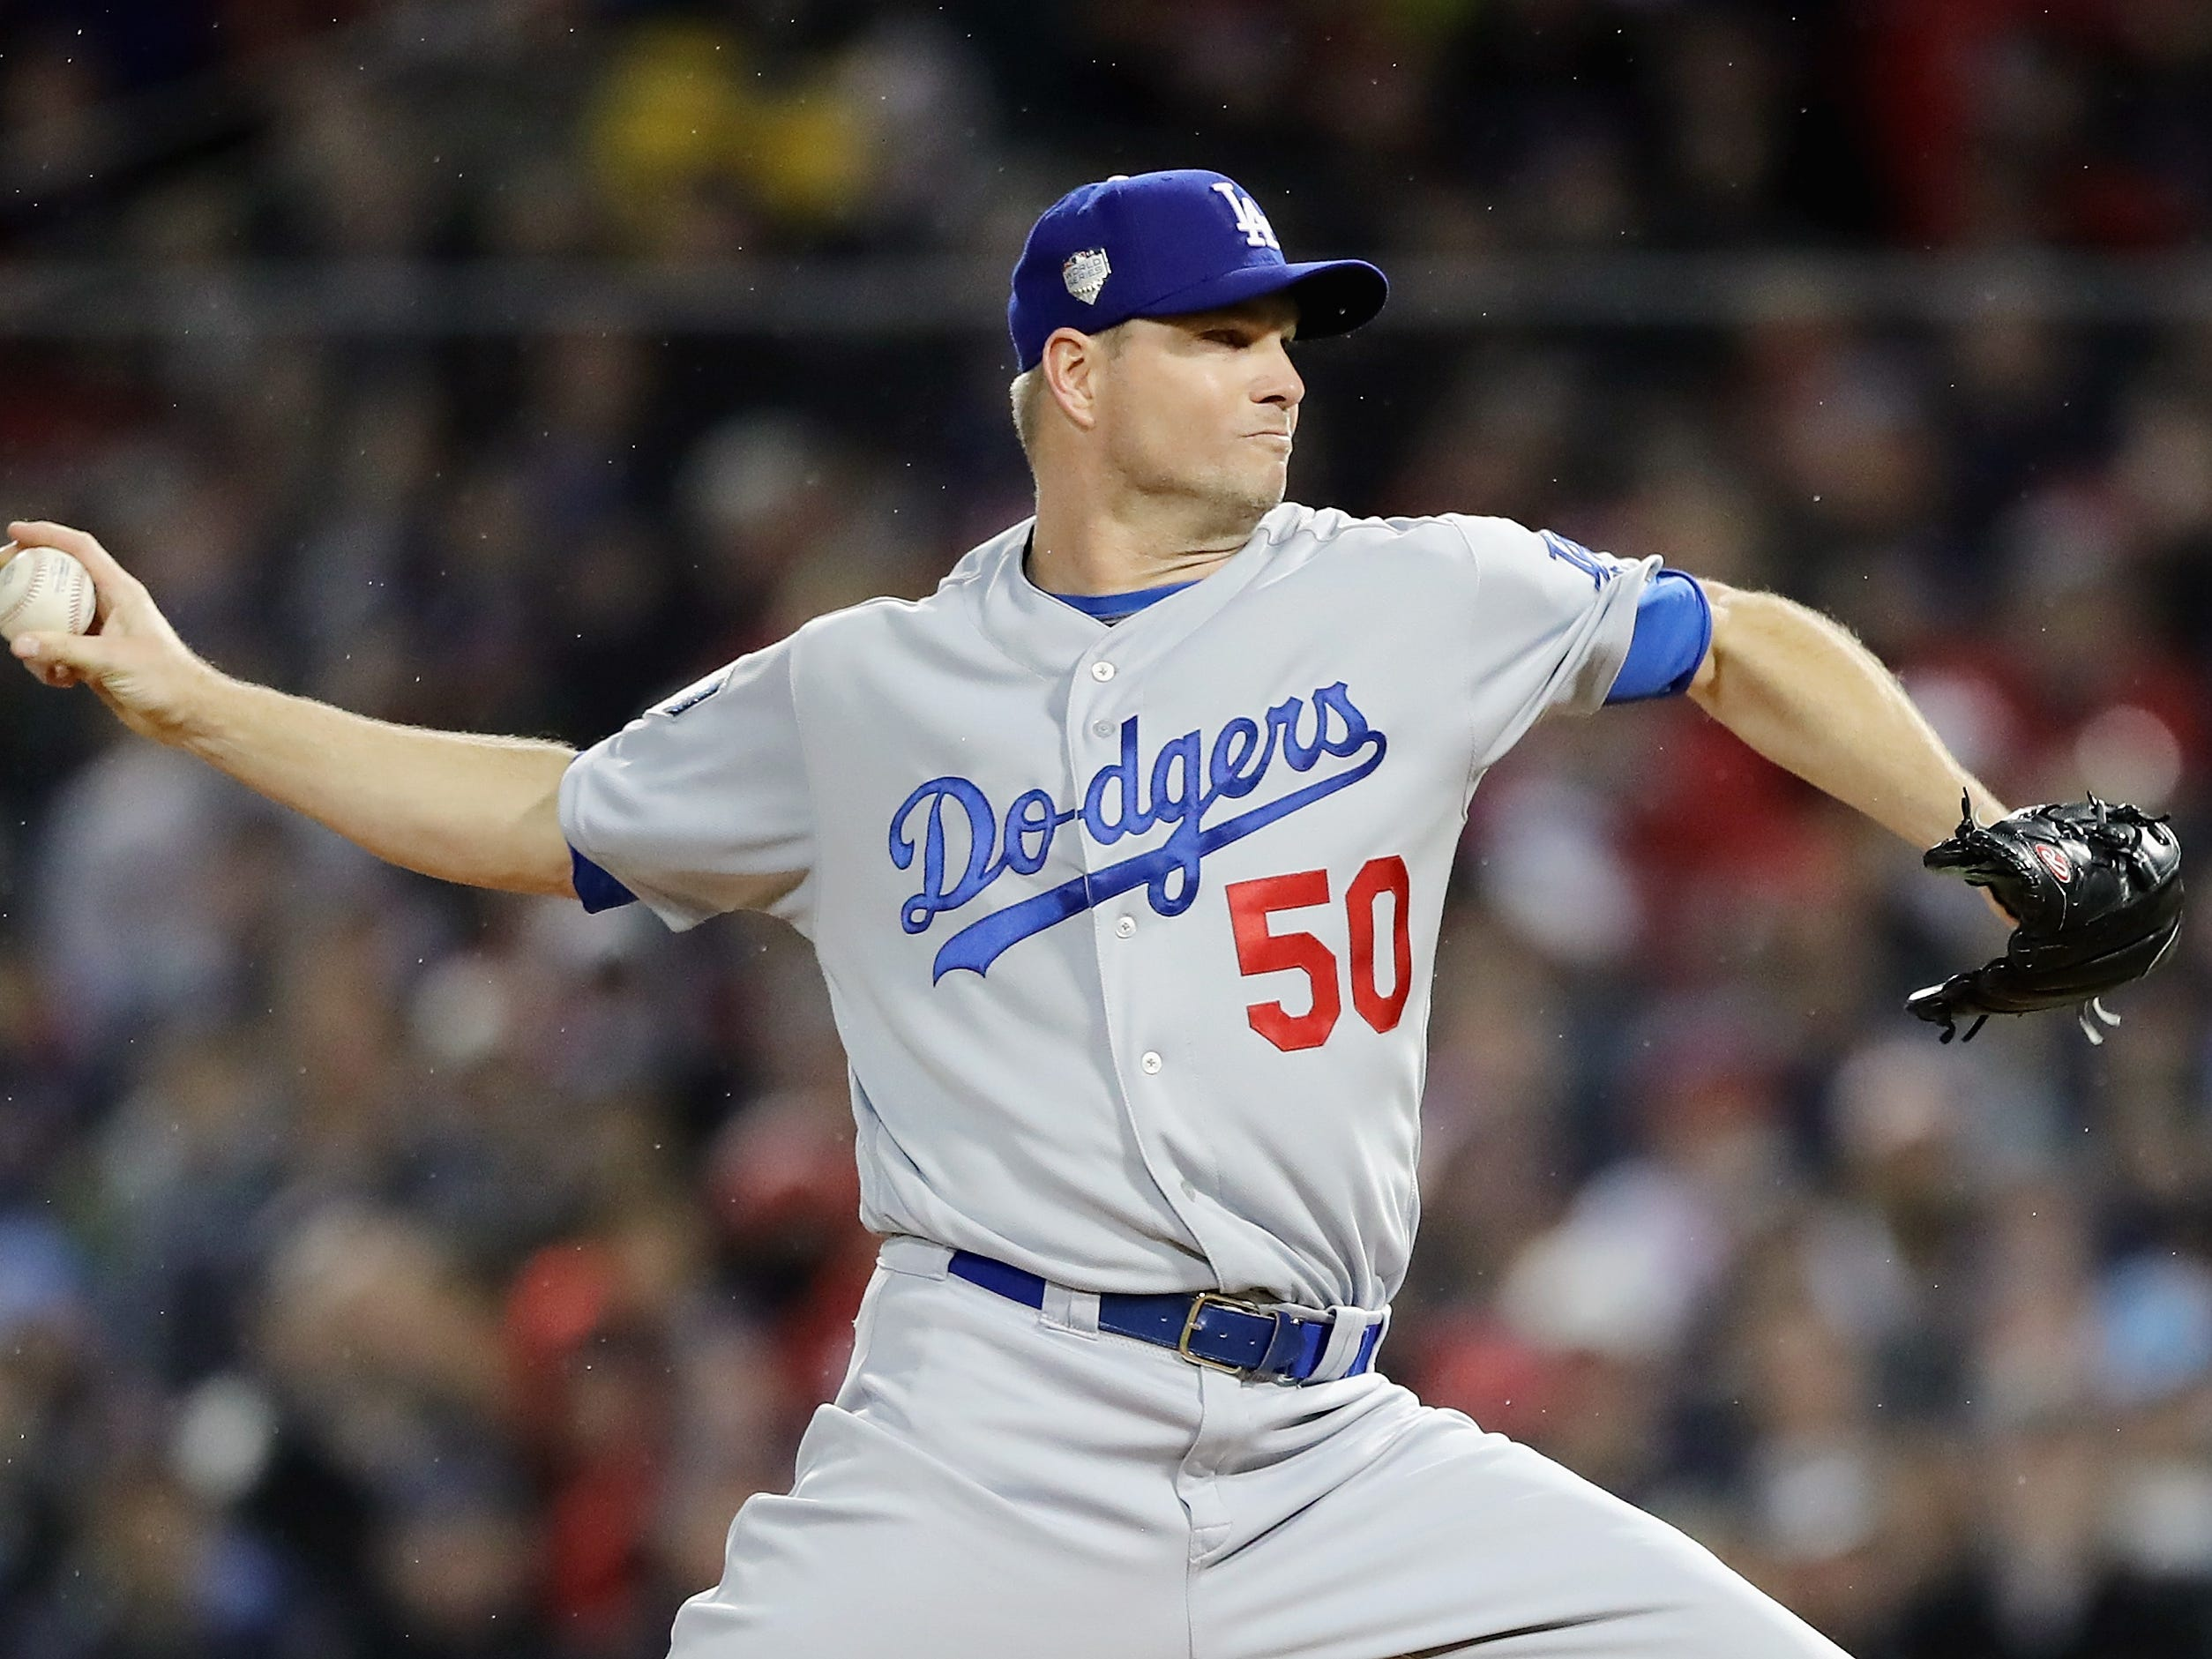 48. Ryan Madson, RP, 38: Rough year for the veteran right-hander, whose ERA doubled from 2017 (1.99 to 3.98) and whose WHIP nearly doubled (0.797 to 1.405). Prediction: Royals, two years, $15 million